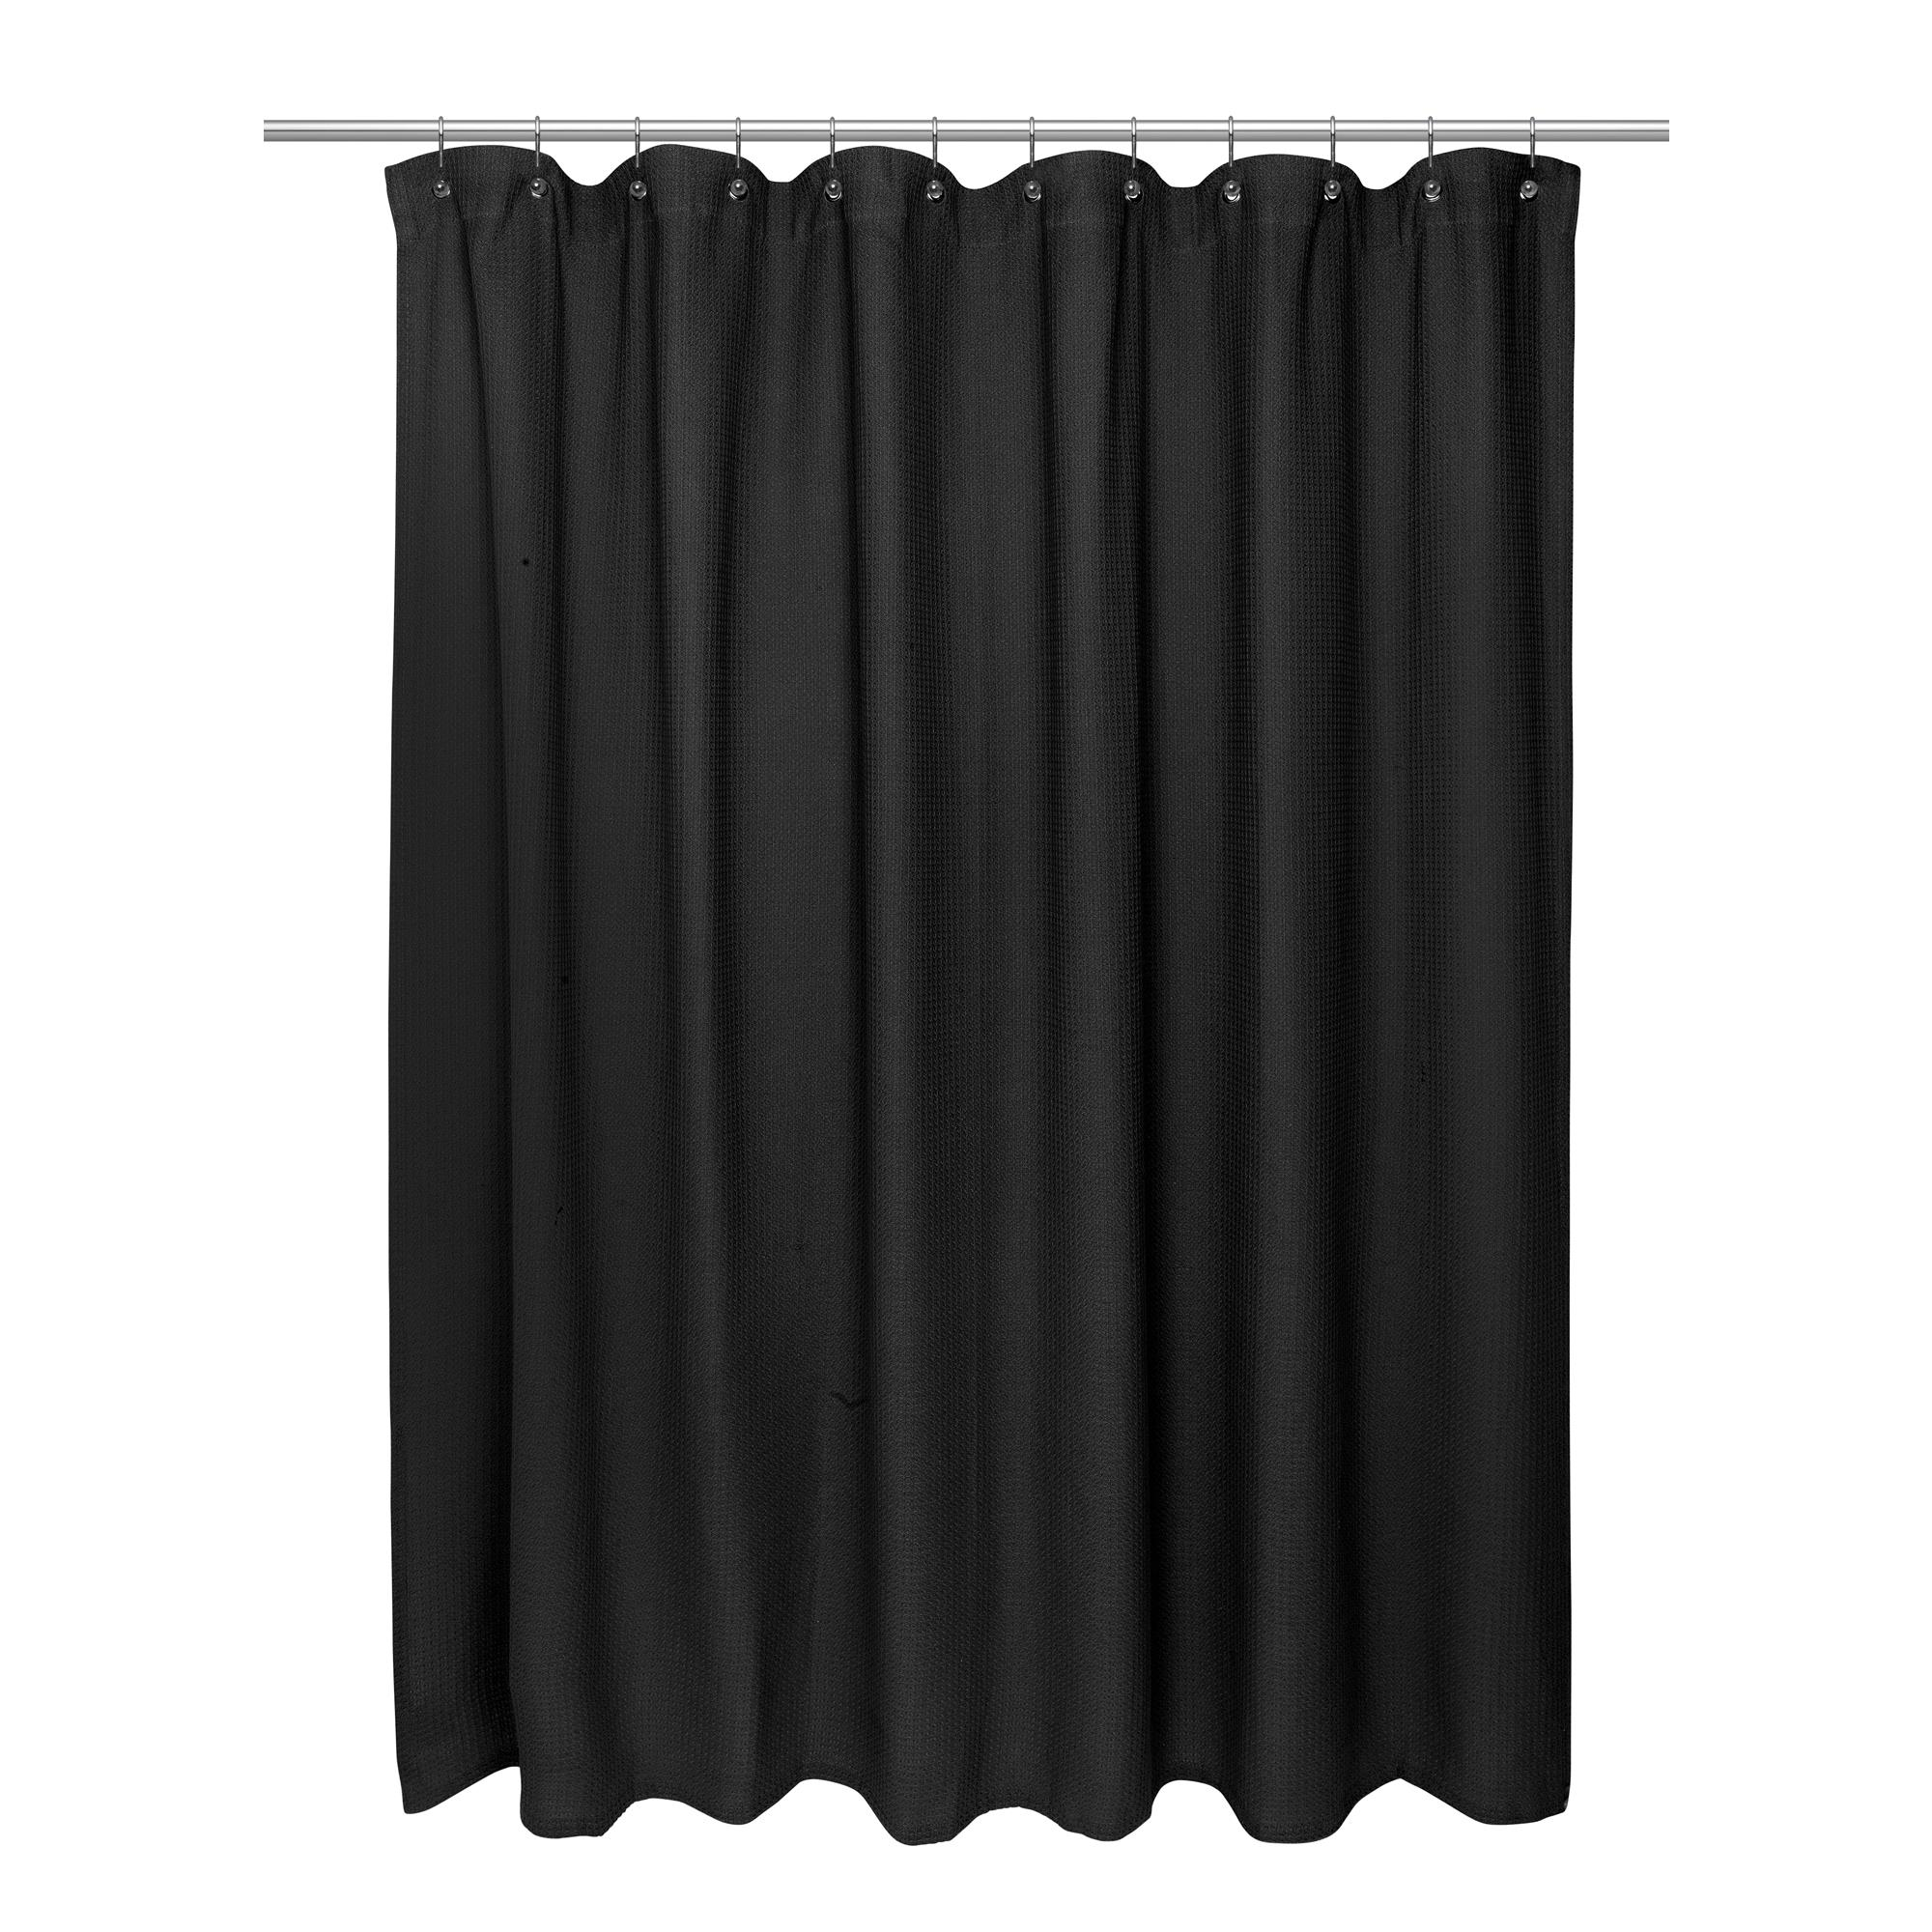 Details About Carnation Home Standard Size 100 Cotton Waffle Weave Shower Curtain Black